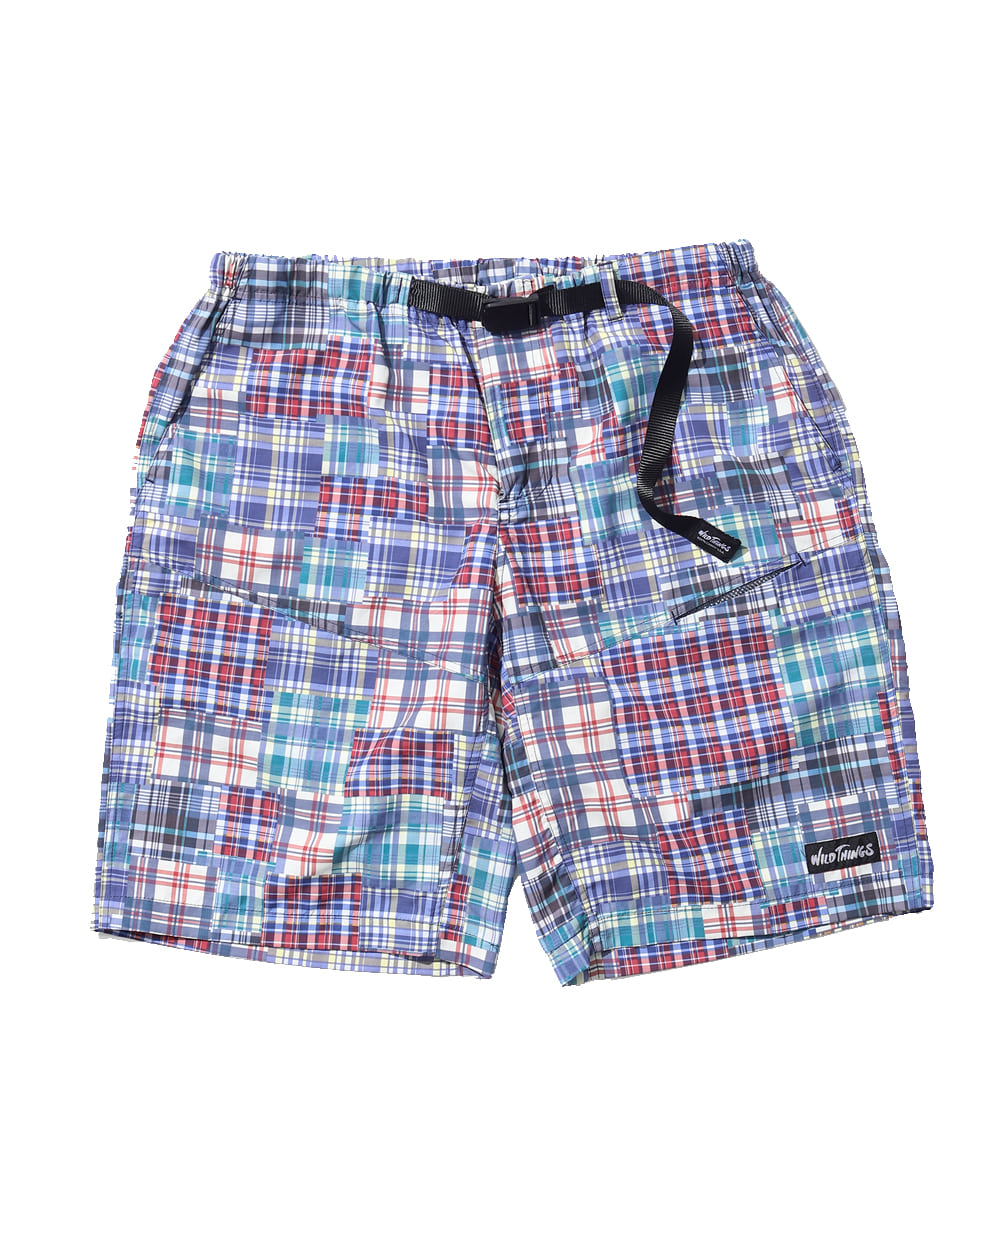 와일드띵스 CAMP SHORTS (Multi)